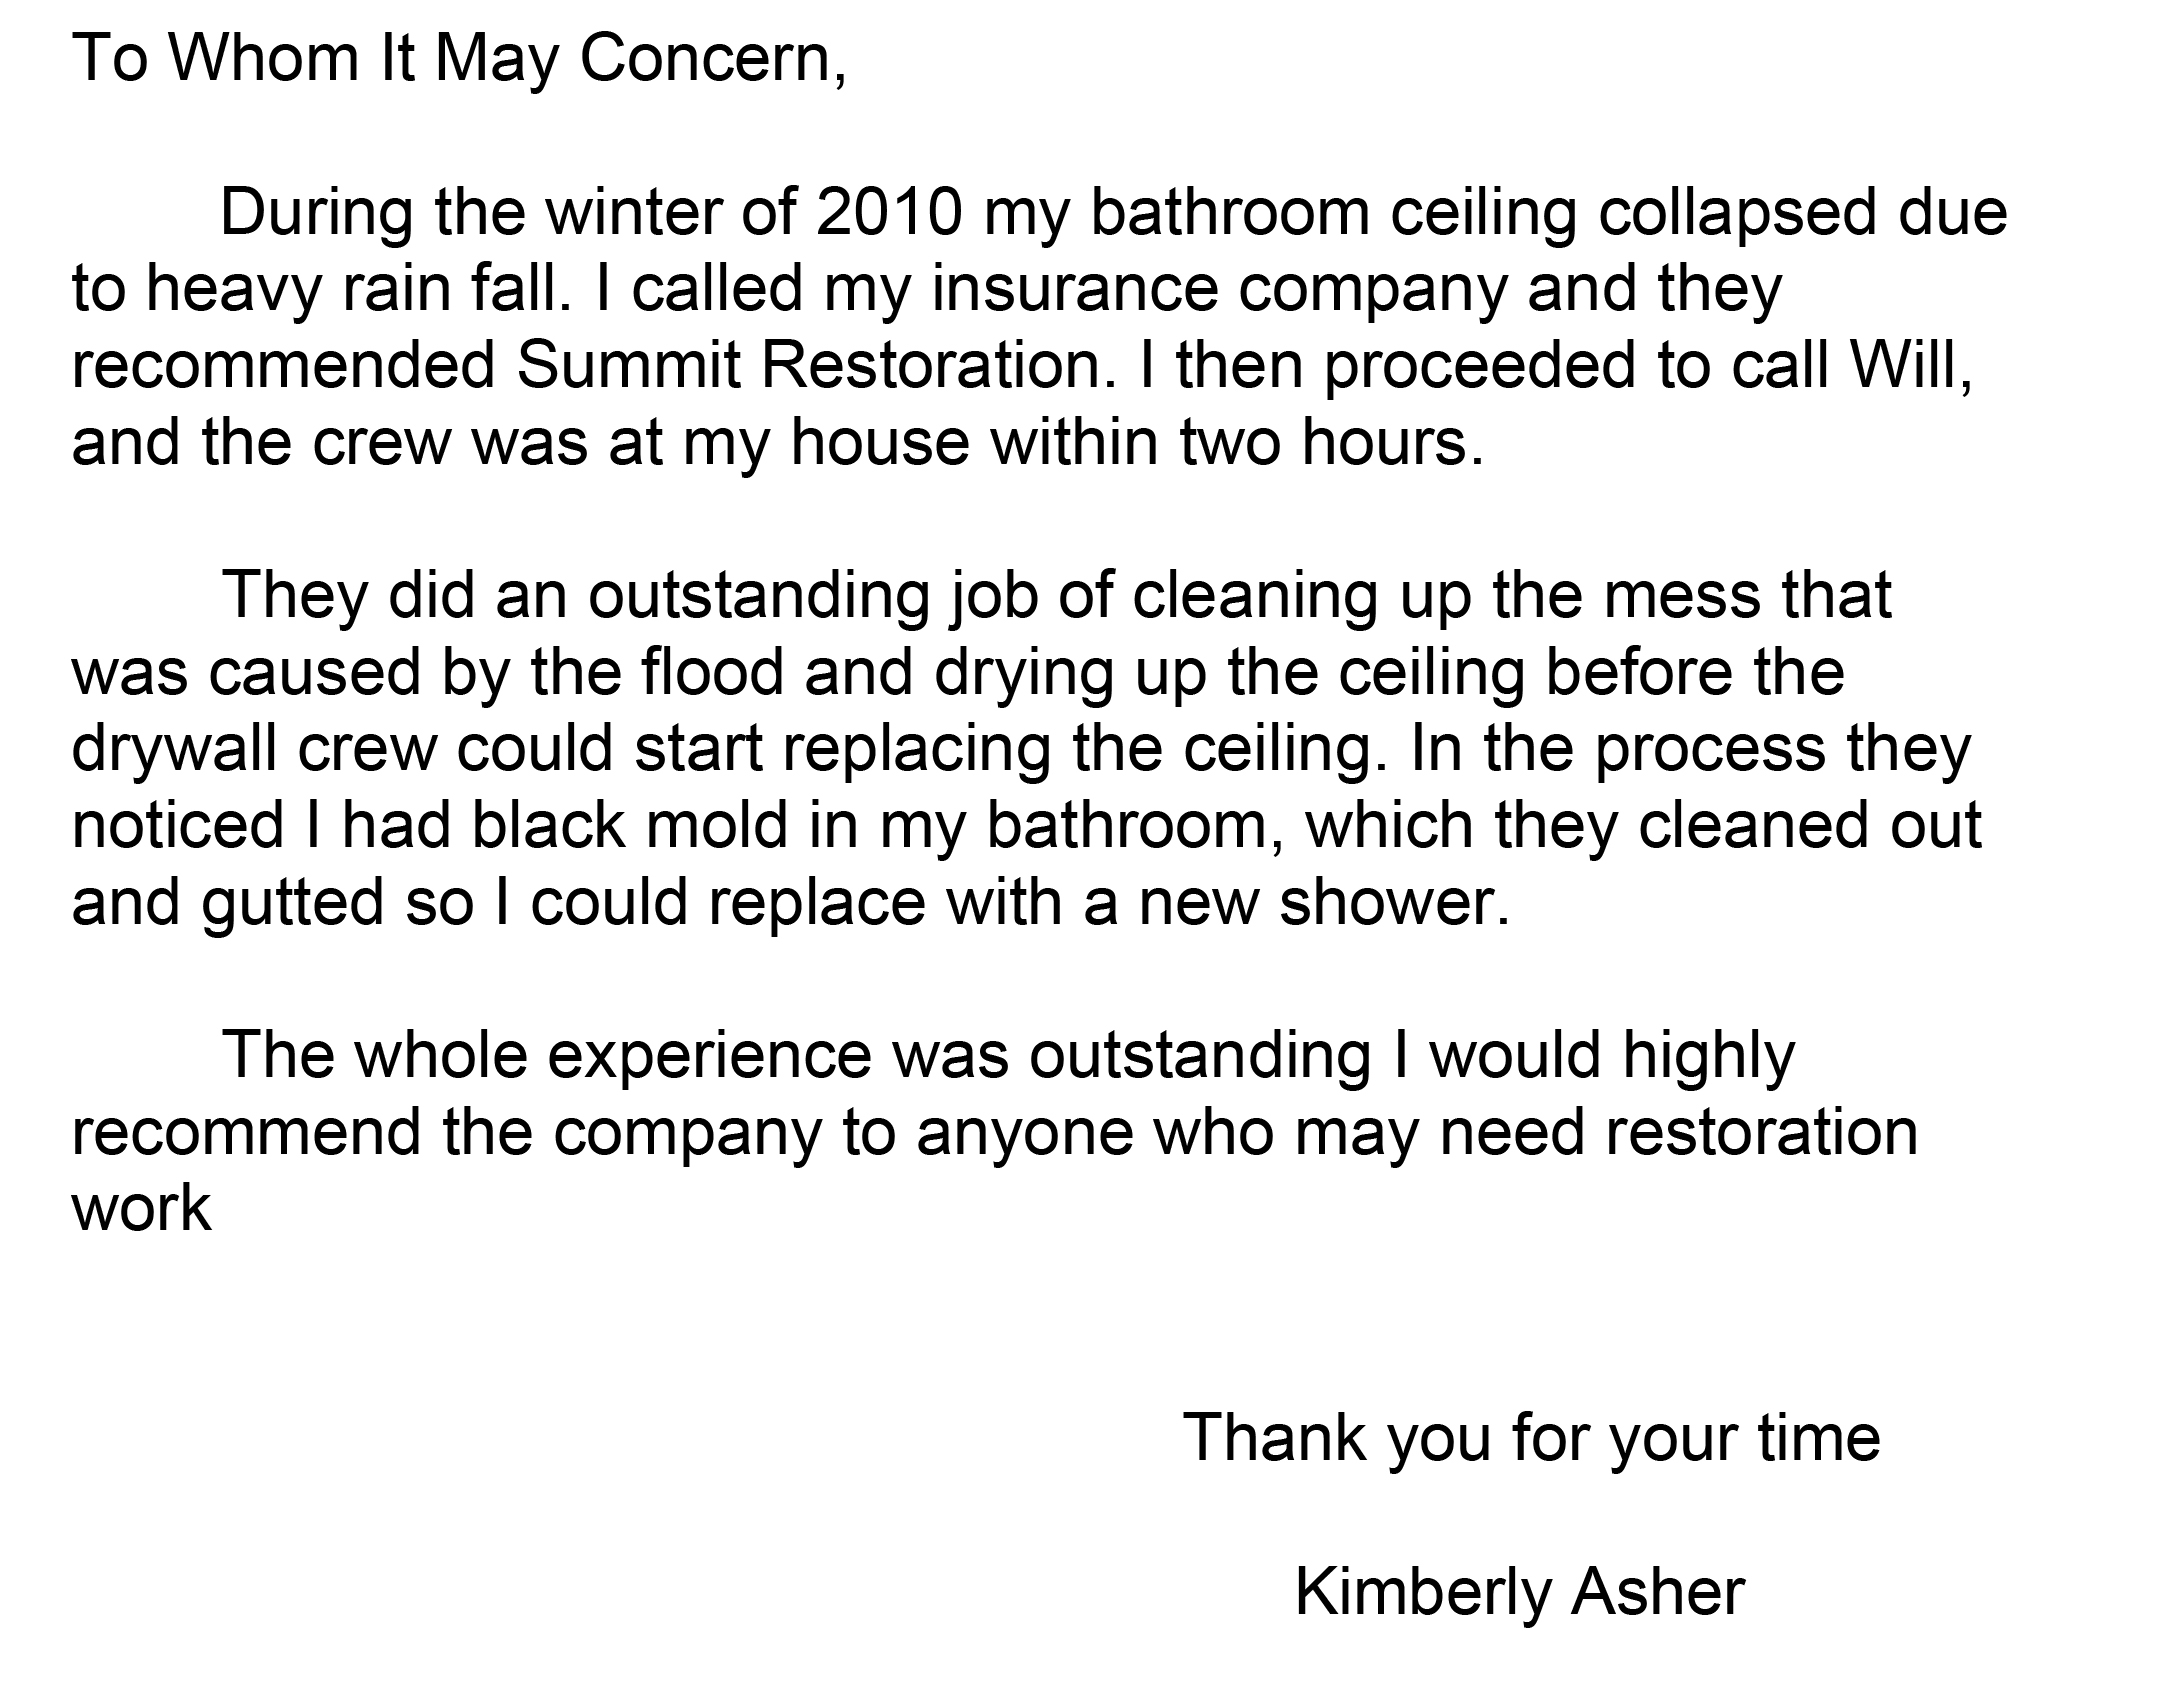 Testimonial from Kimberly Asher